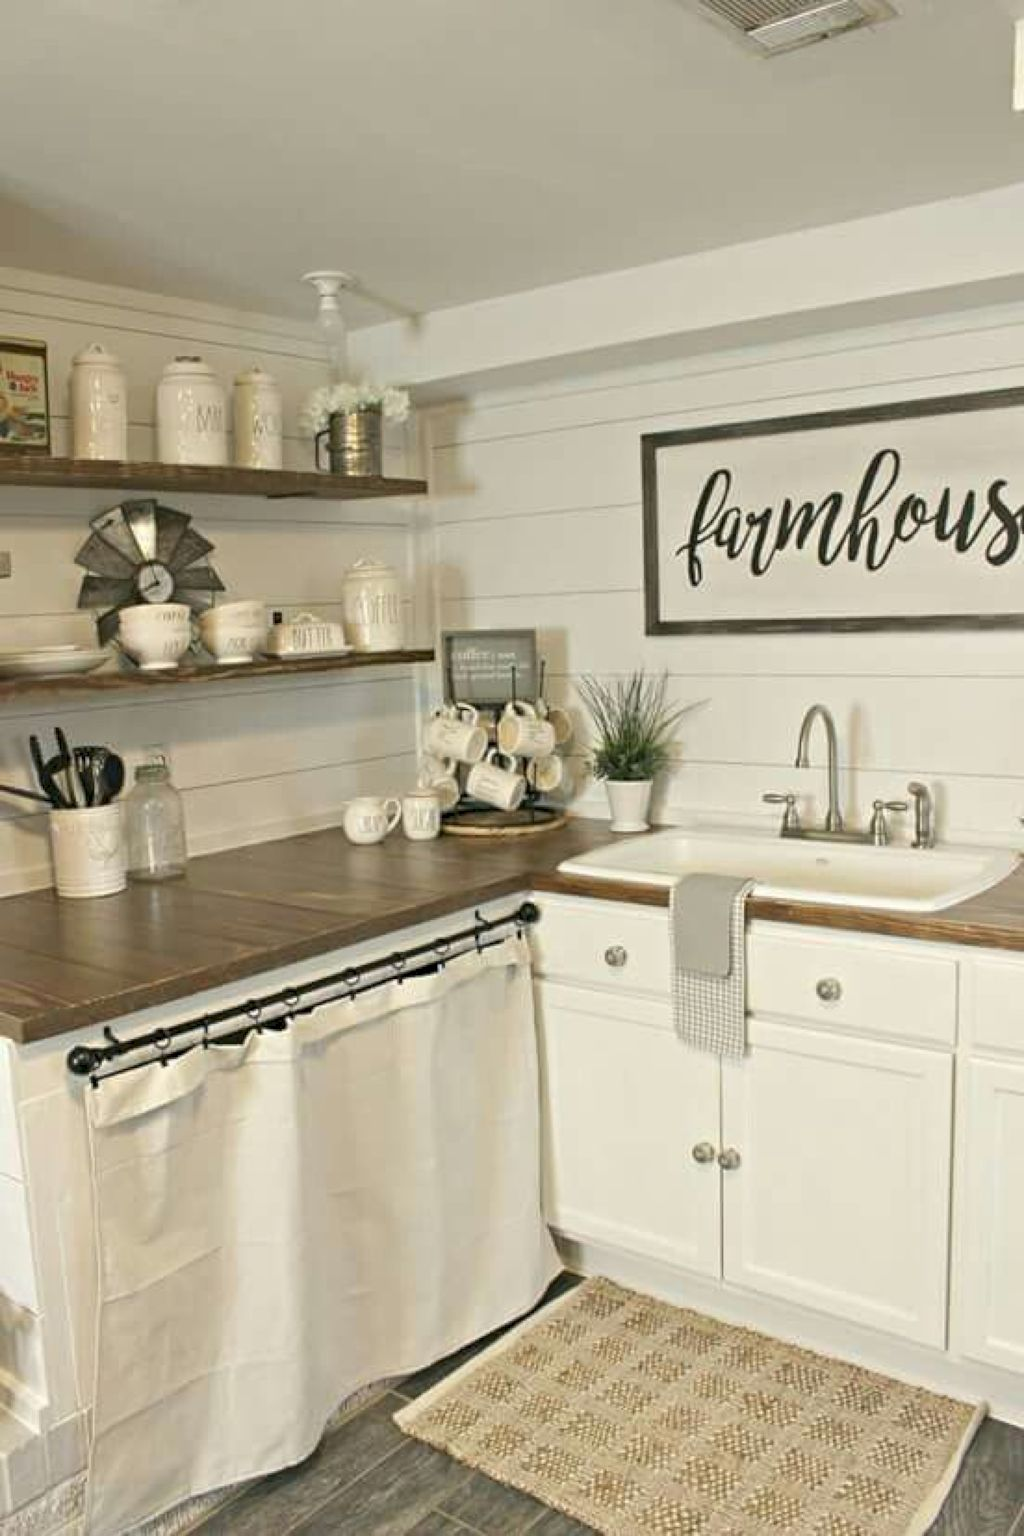 11 Country Farmhouse Kitchen Cabinets Ideas In 2020 Farmhouse Kitchen Inspiration Kitchen Remodel Small Kitchen Design Small